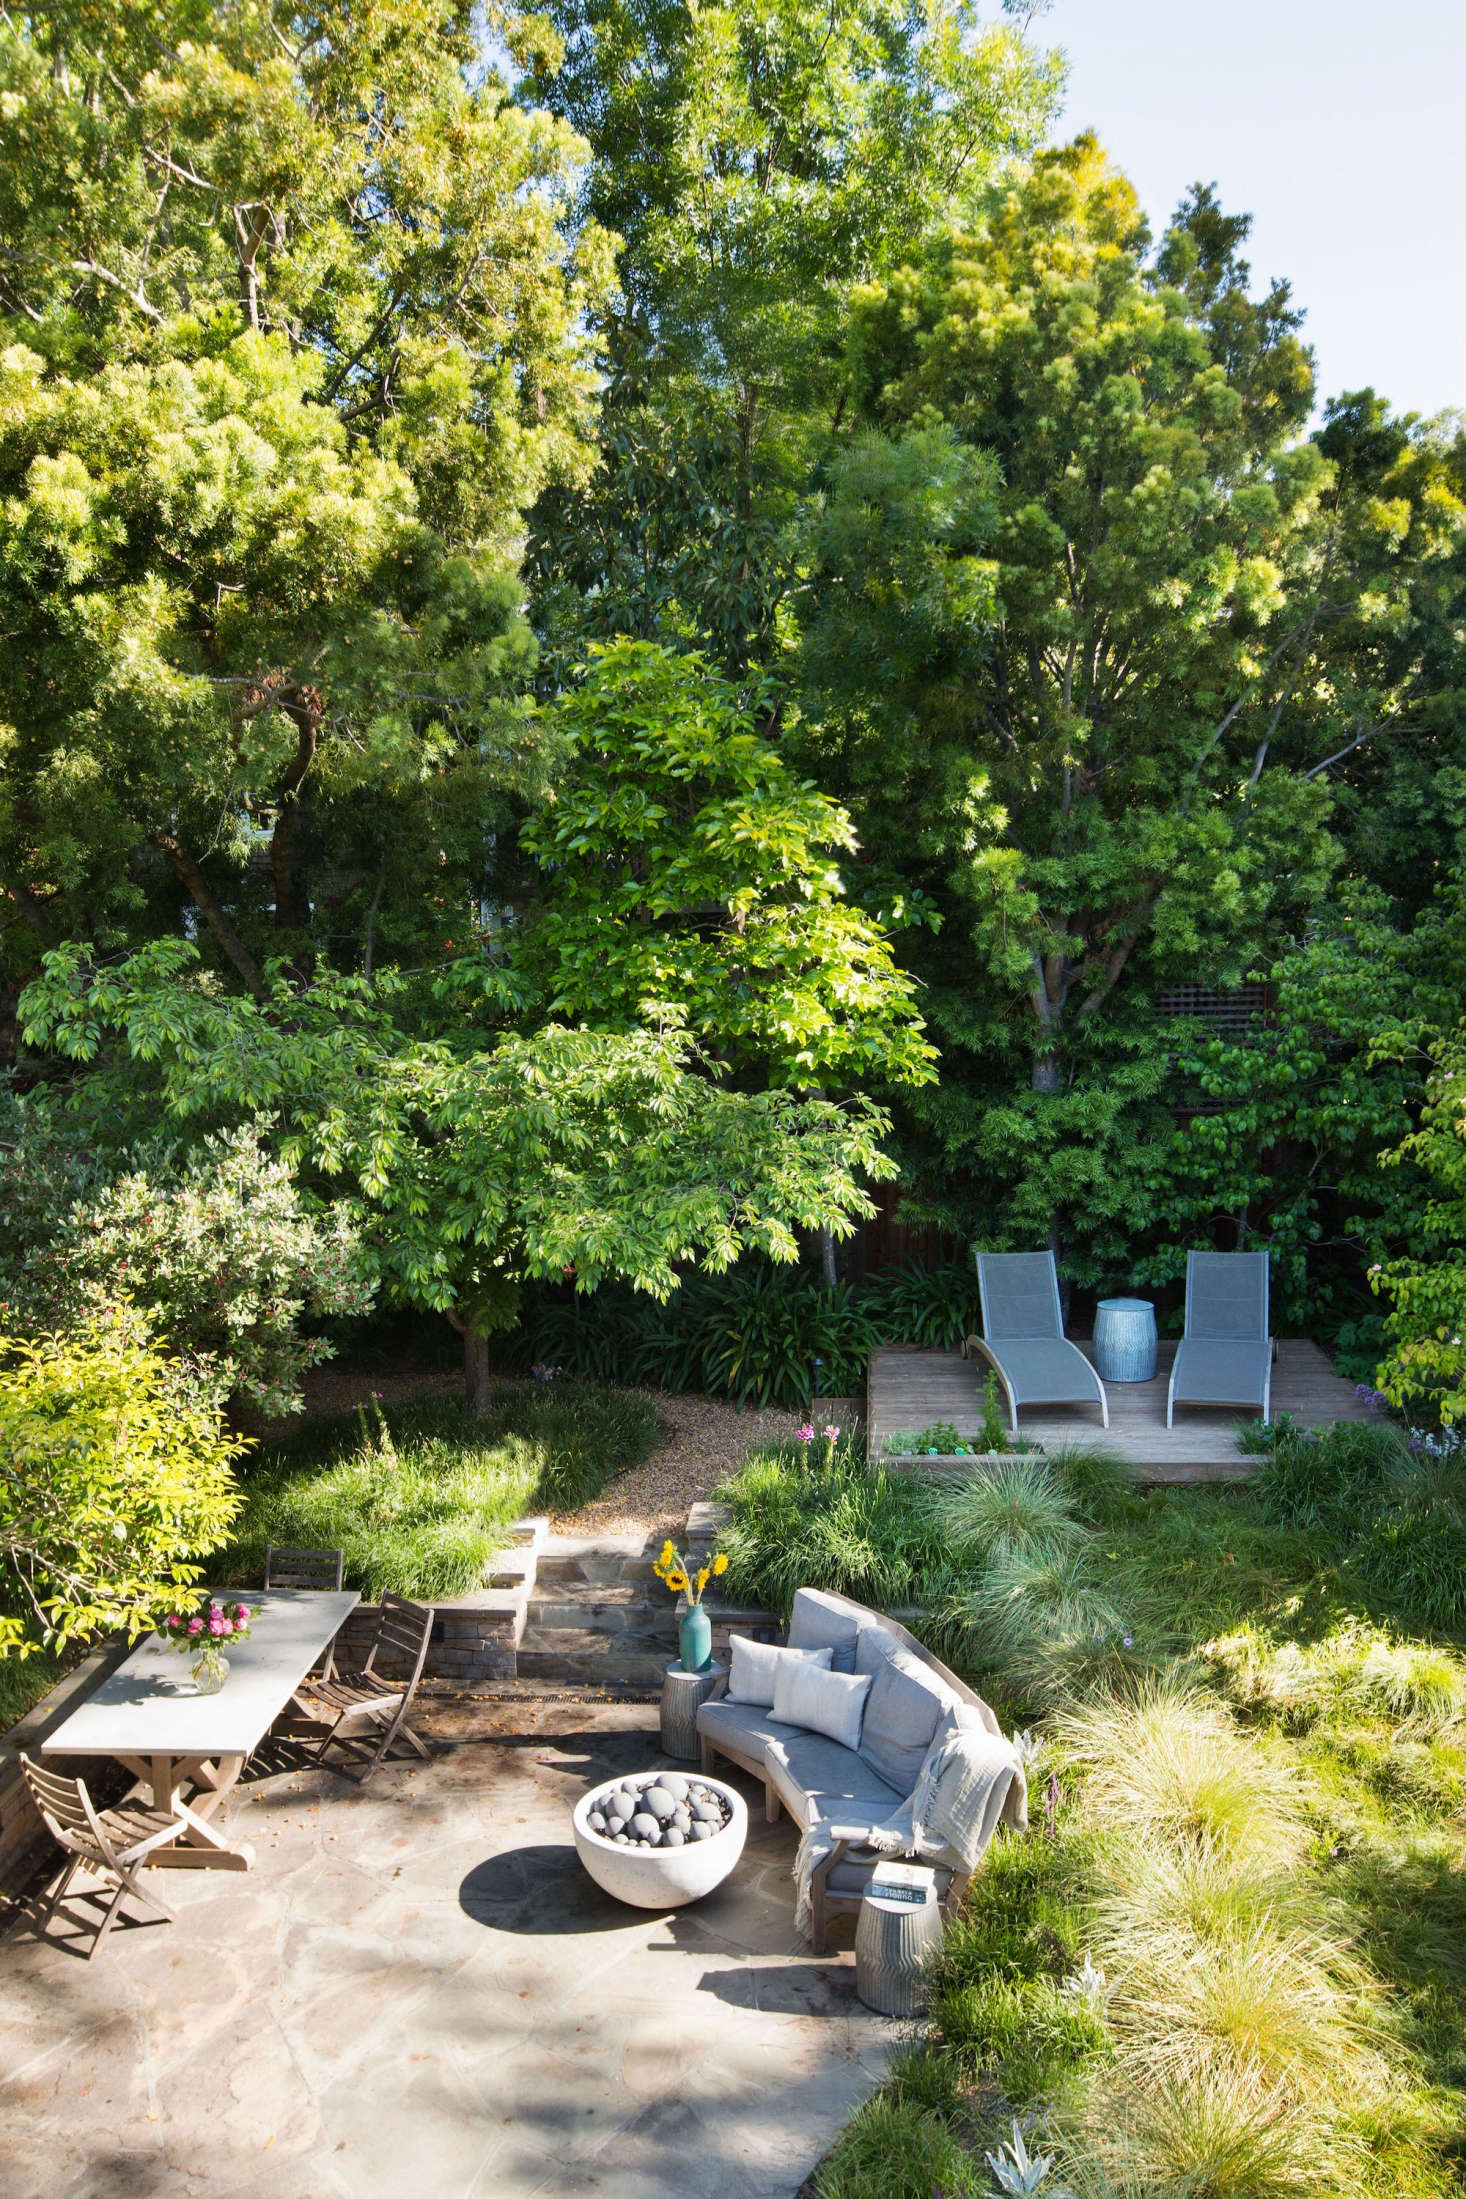 From a bedroom balcony, you look down into a backyard meadow full of flowing grasses. A raised wooden platform with lounge chairs is in the spot once occupied by a  backyard trampoline.